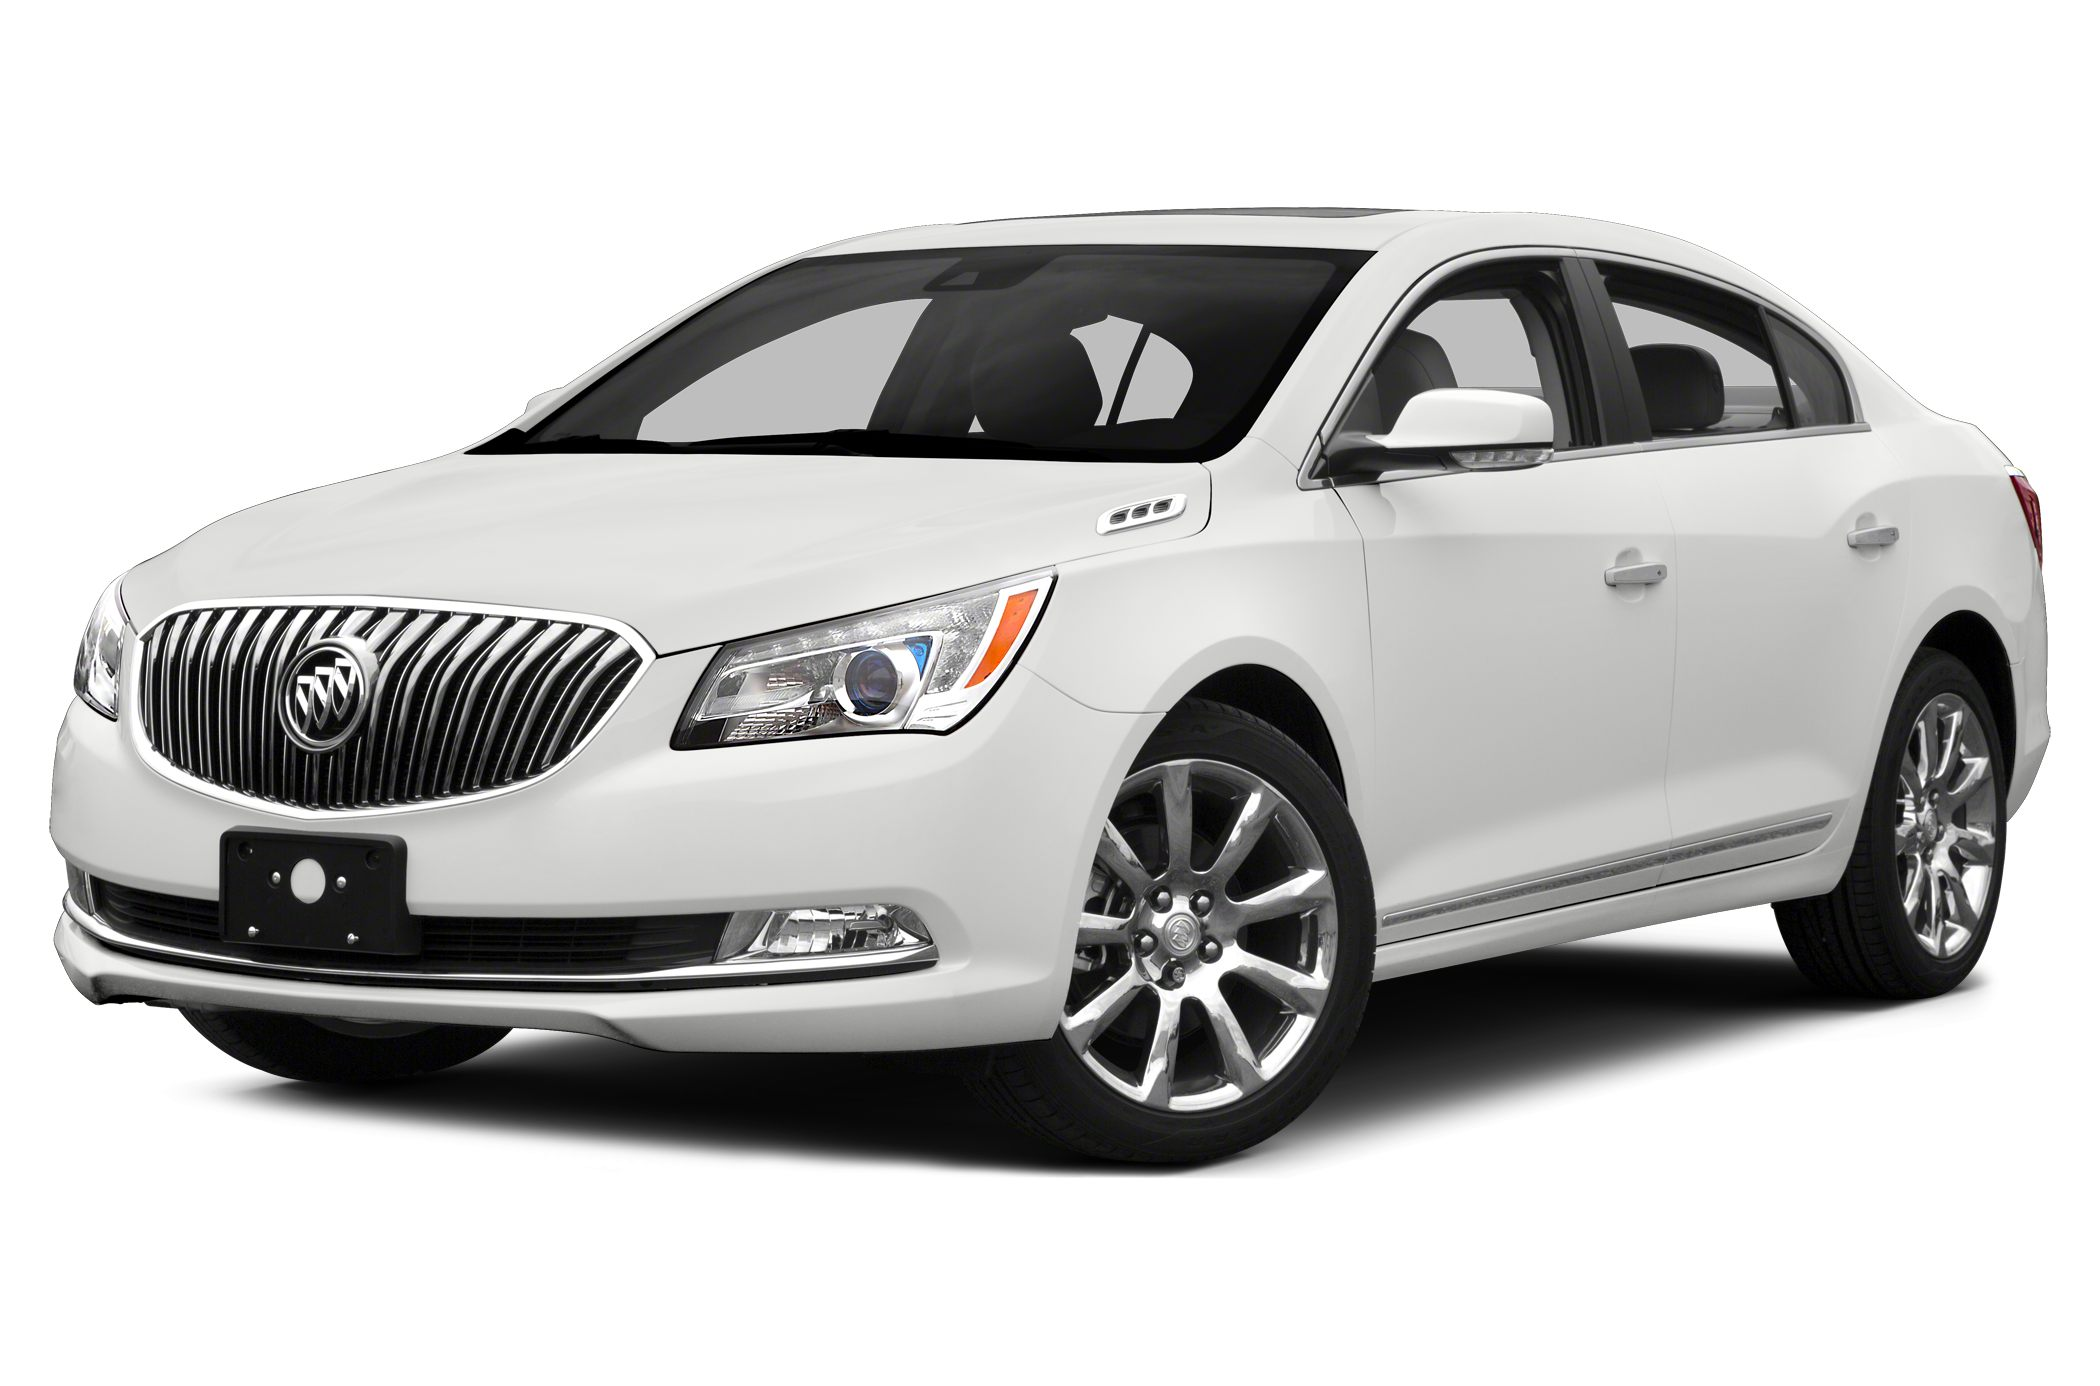 2015 Buick LaCrosse Leather Sedan for sale in Twin Falls for $0 with 1 miles